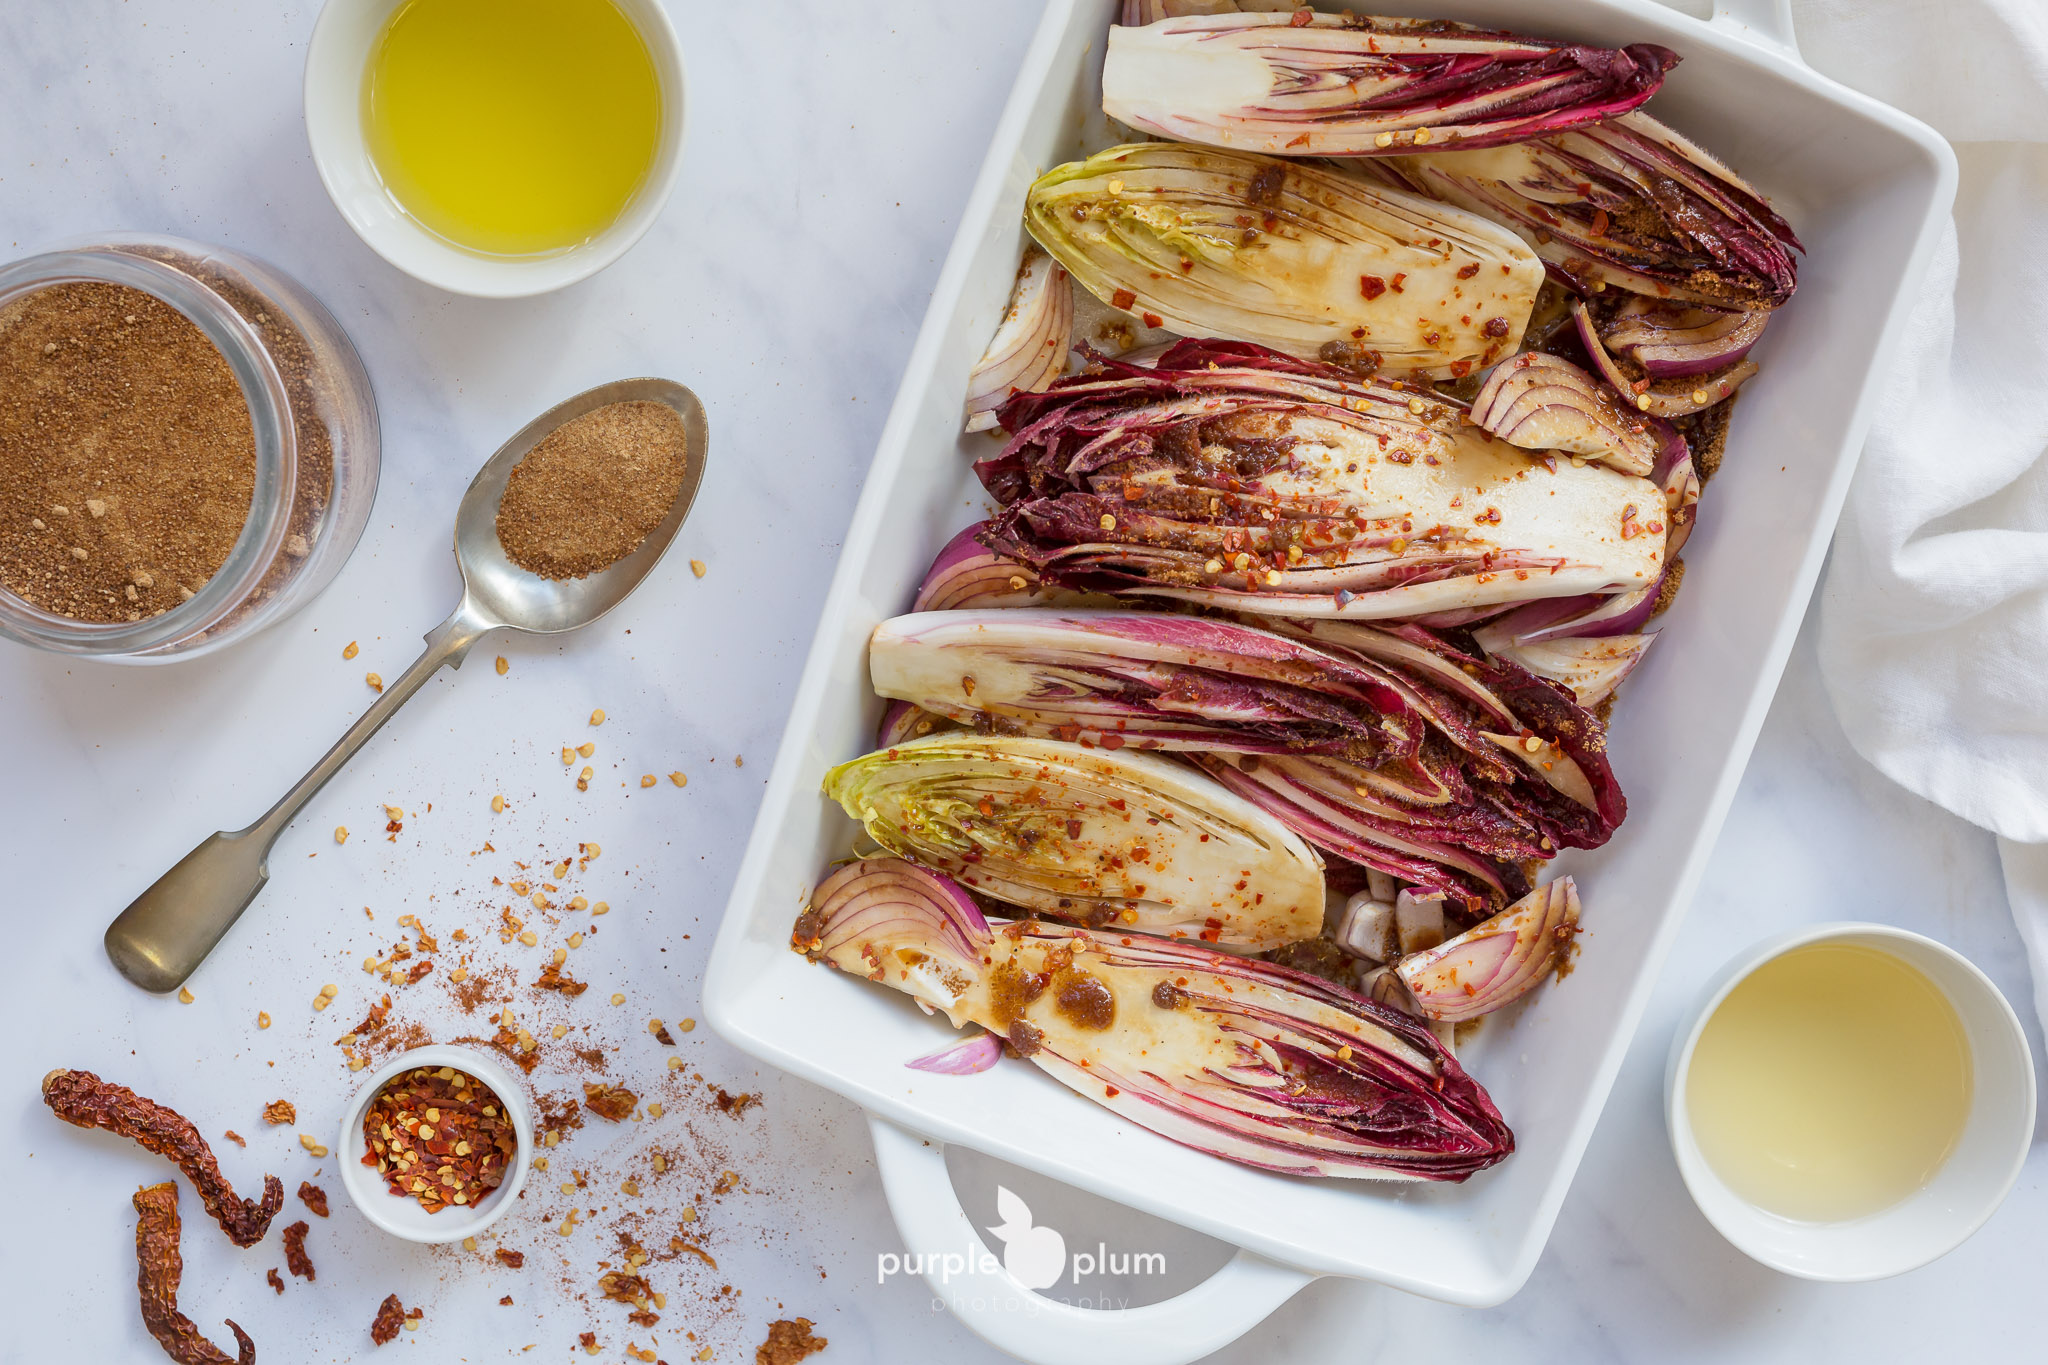 Baked Chicory with Caramelized Onions and Chilli